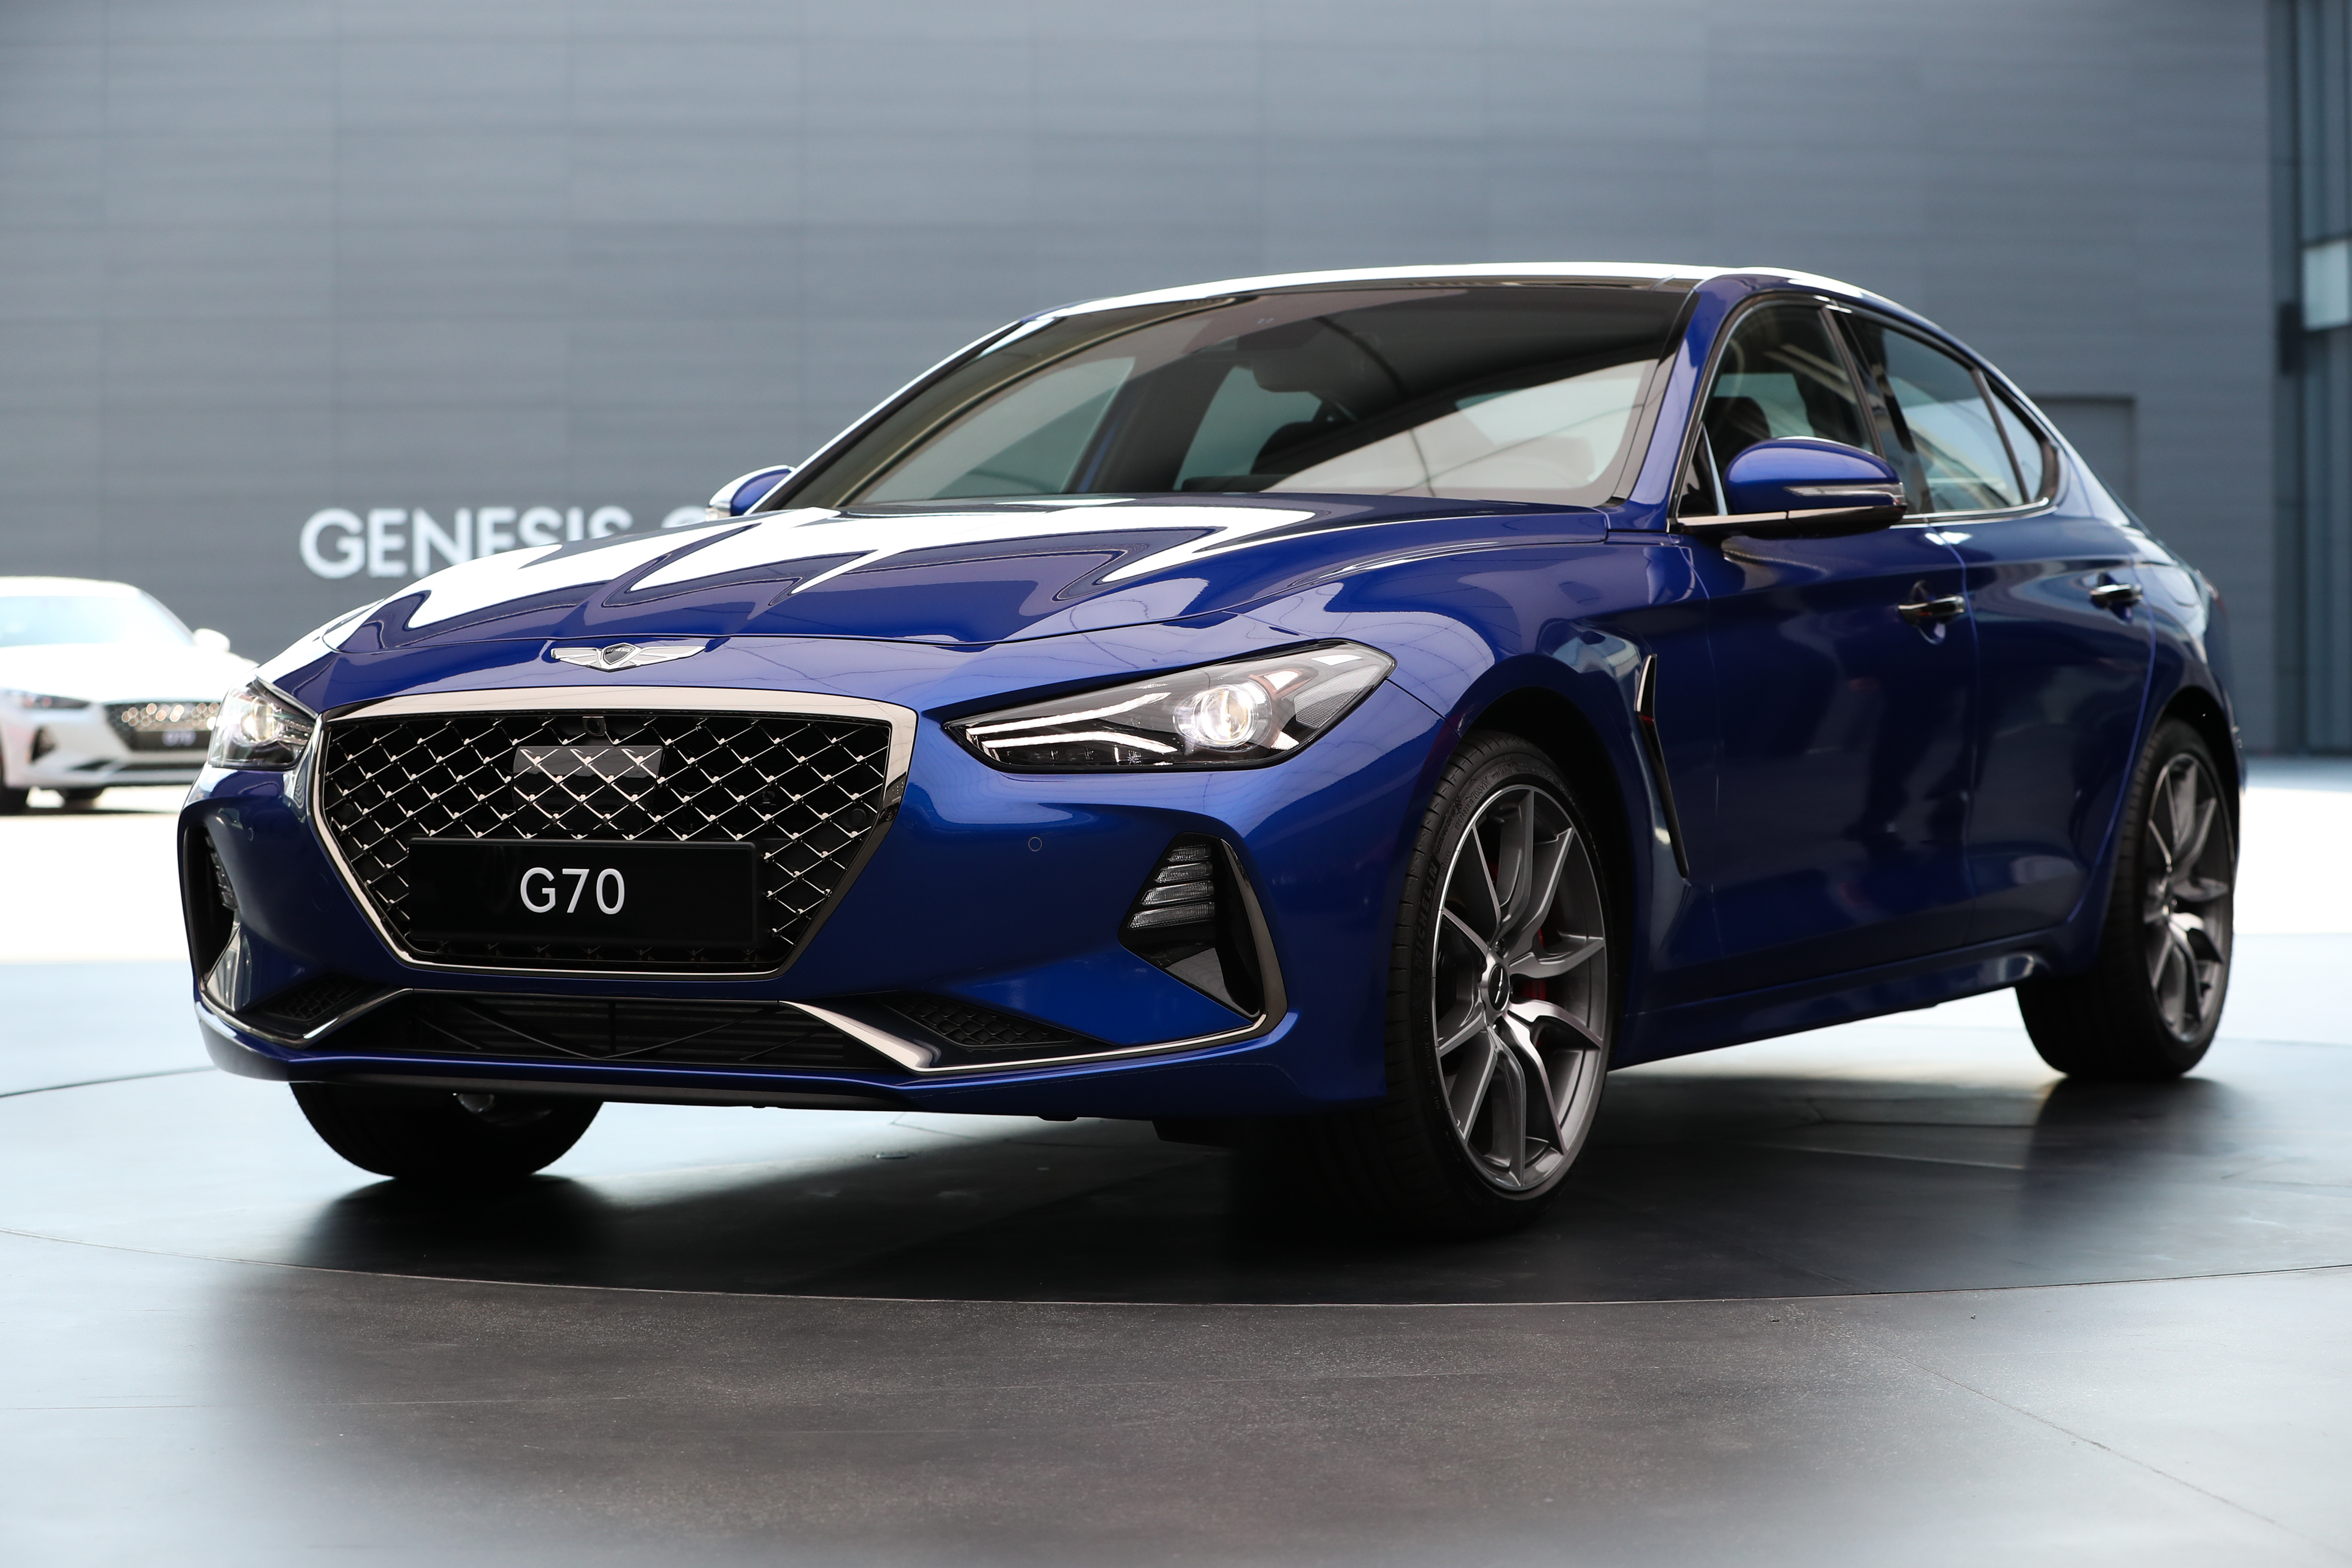 Hyundai Motor Co. Vice Chairman Yang Woong-chul Launches the Genesis G70 Sedan